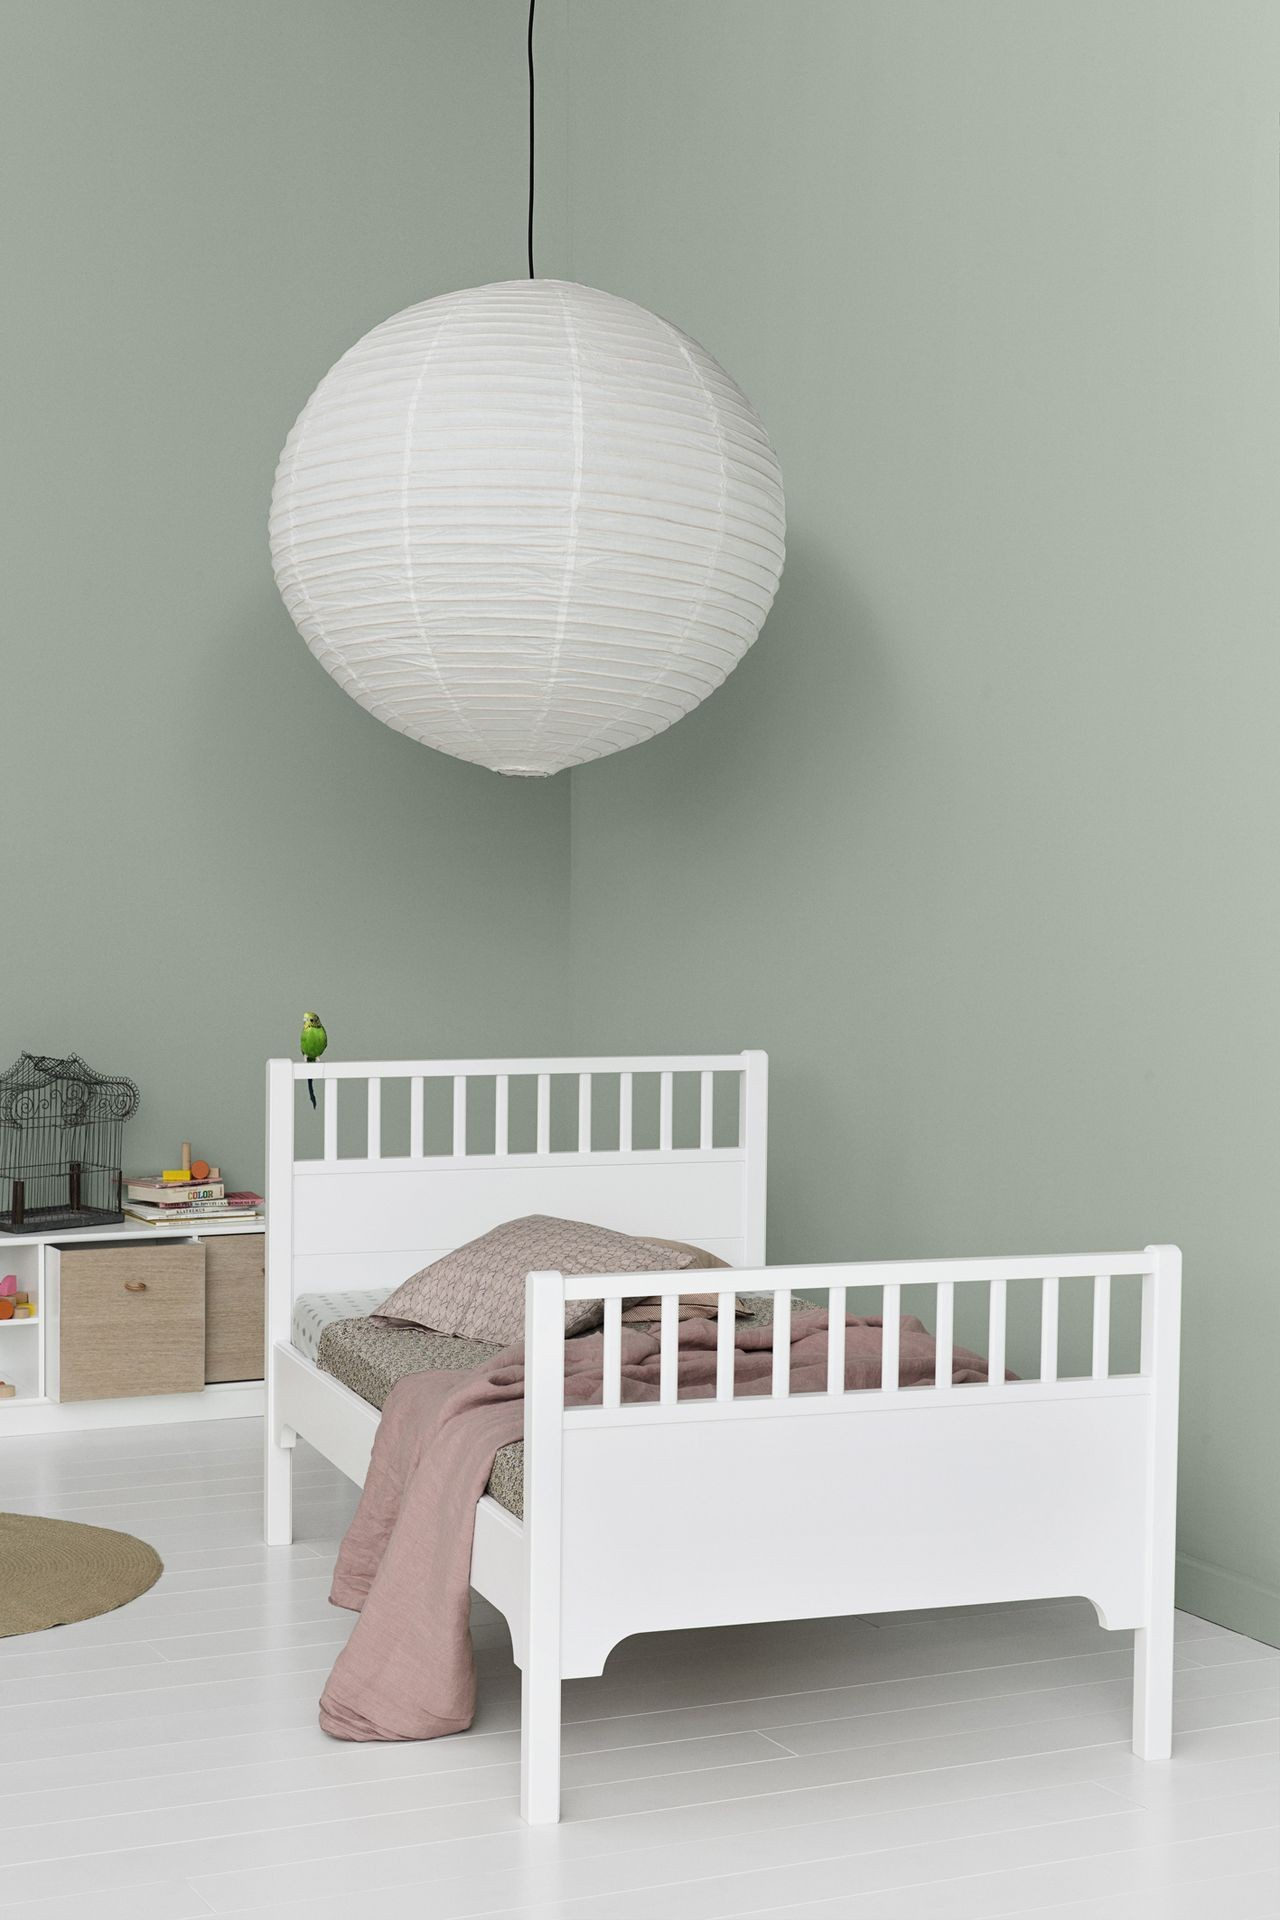 Oliver Furniture Seaside Juniorbett kaufen - Kleine Fabriek